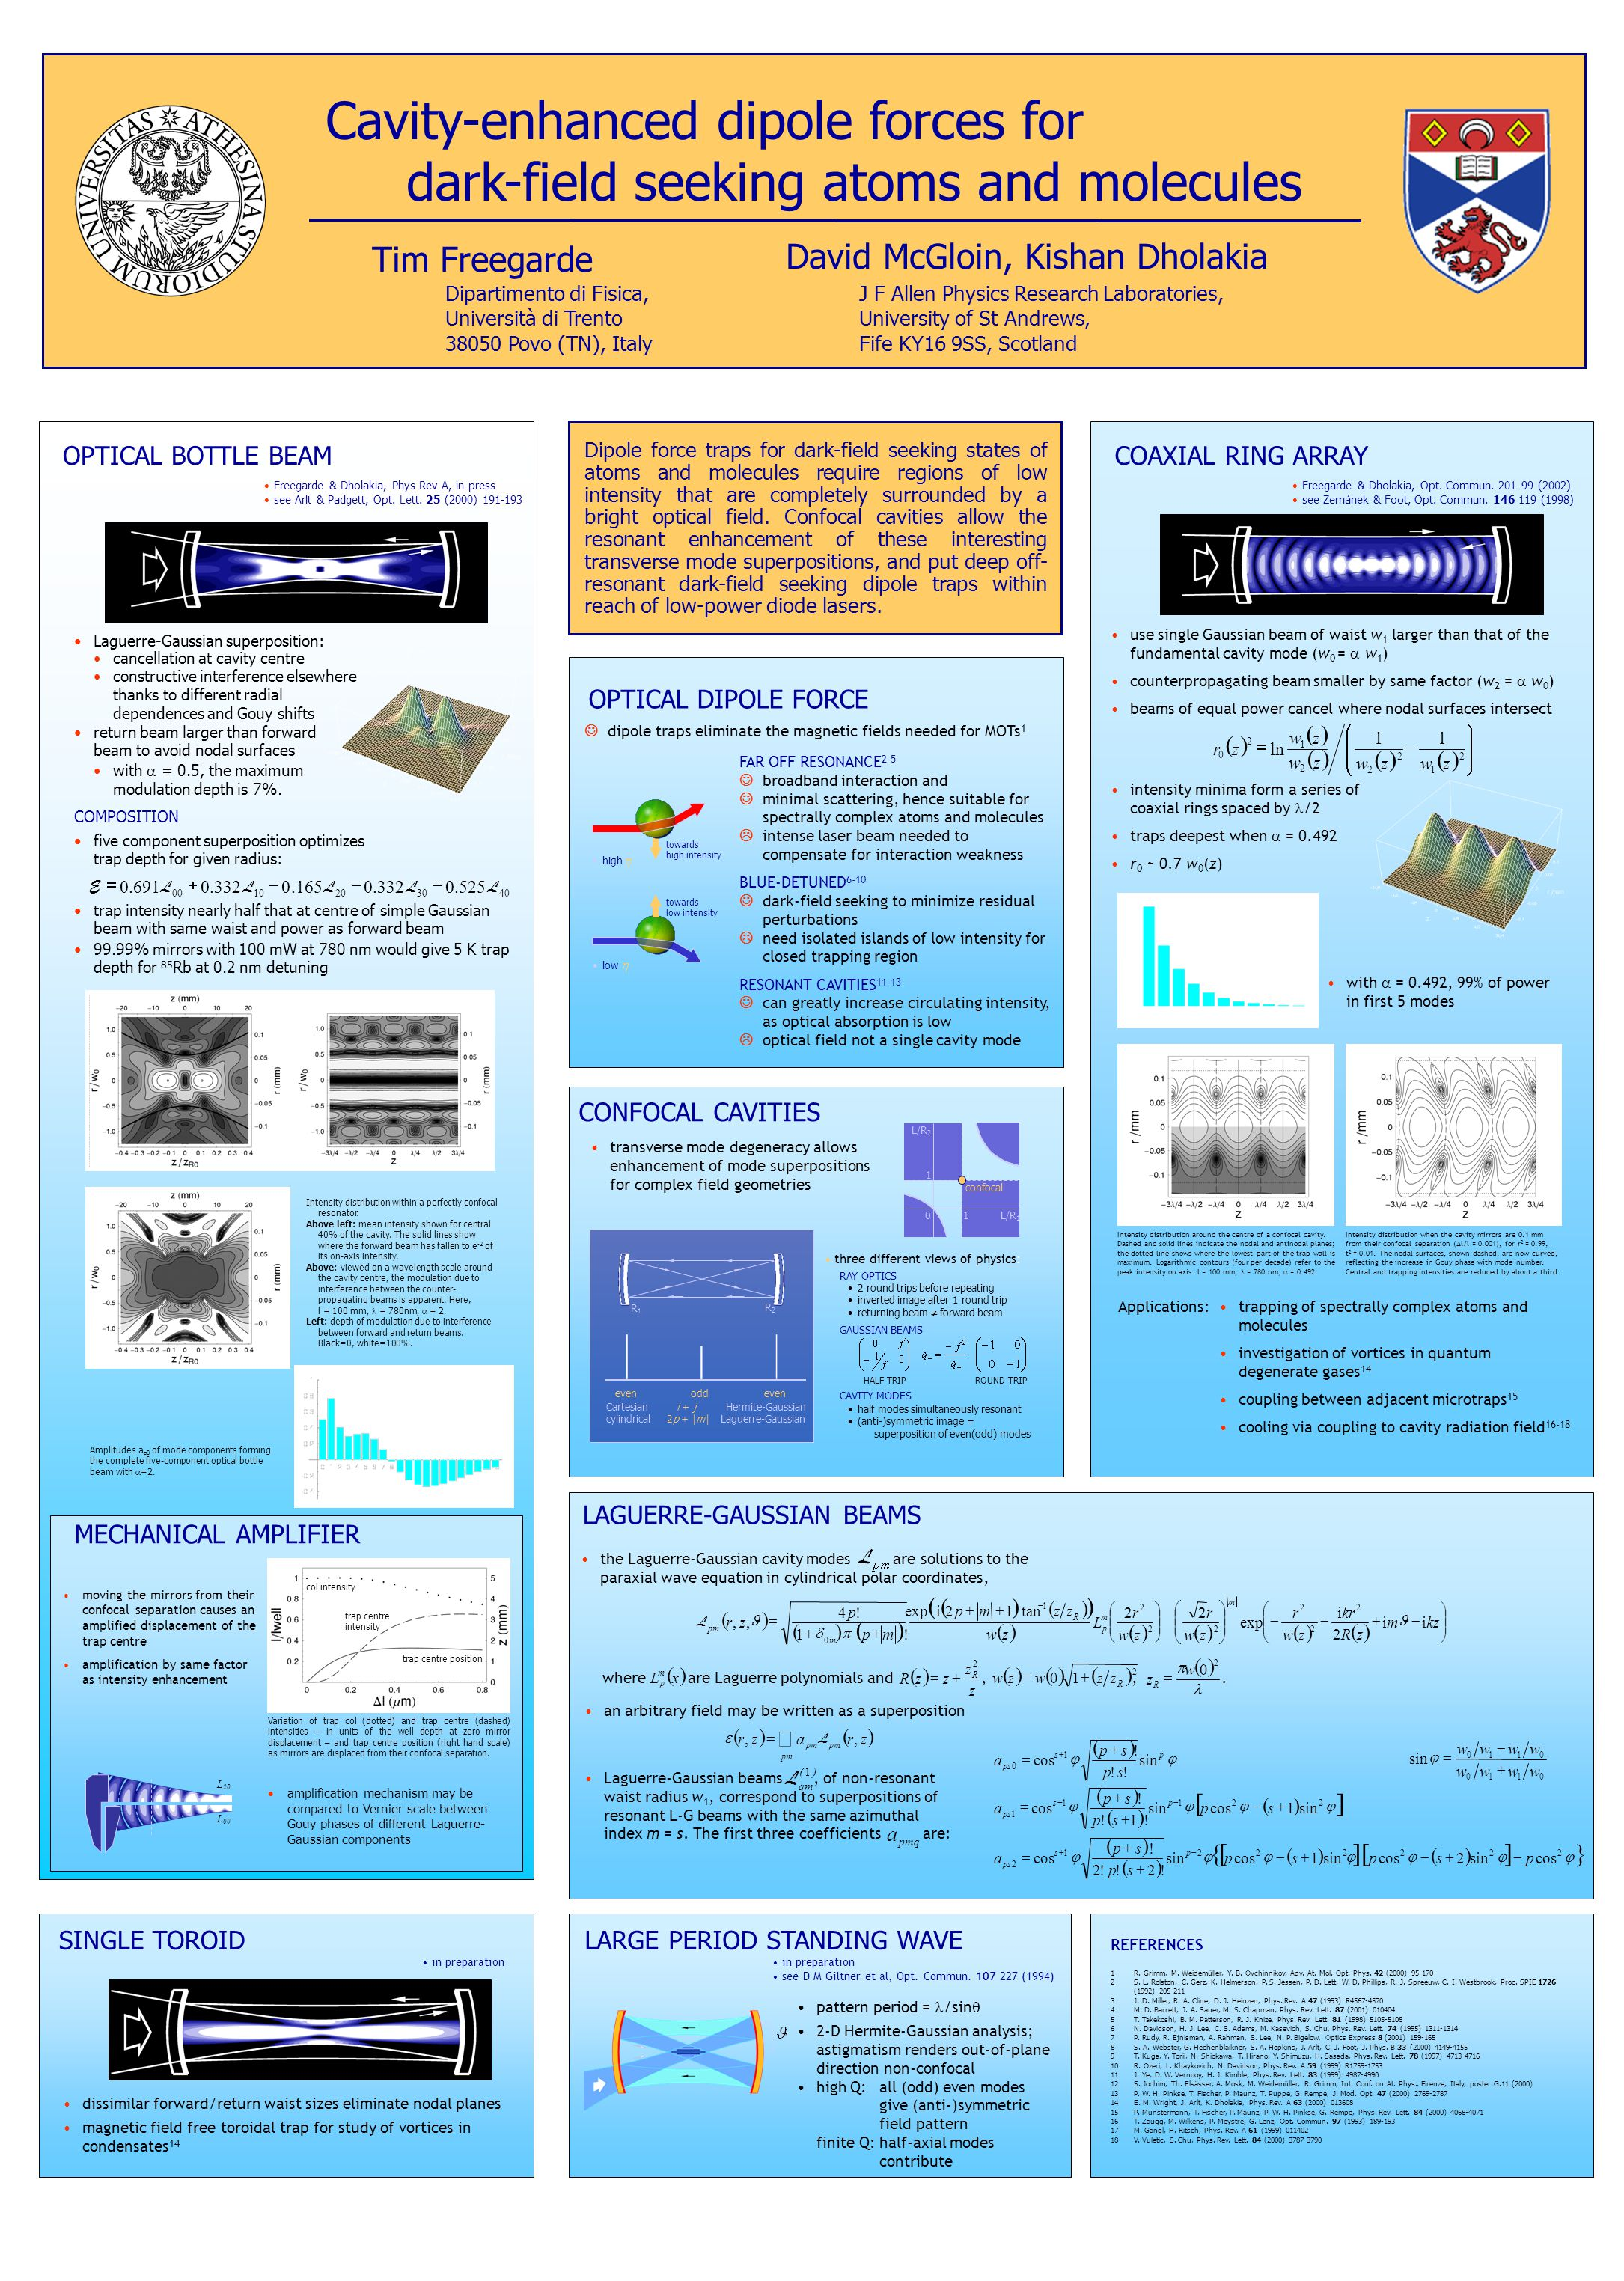 Cavity-enhanced dipole forces for dark-field seeking atoms and molecules Tim Freegarde Dipartimento di Fisica, Università di Trento 38050 Povo (TN), Italy J F Allen Physics Research Laboratories, University of St Andrews, Fife KY16 9SS, Scotland David McGloin, Kishan Dholakia R2R2 R1R1 even odd Cartesian cylindrical Hermite-Gaussian Laguerre-Gaussian i + j 2p + |m | RAY OPTICS 2 round trips before repeating inverted image after 1 round trip returning beam  forward beam GAUSSIAN BEAMS CAVITY MODES half modes simultaneously resonant (anti-)symmetric image = superposition of even(odd) modes HALF TRIPROUND TRIP L/R 1 L/R 2 01 1 confocal high low towards low intensity towards high intensity L 20 L 00 OPTICAL BOTTLE BEAM Freegarde & Dholakia, Phys Rev A, in press see Arlt & Padgett, Opt.